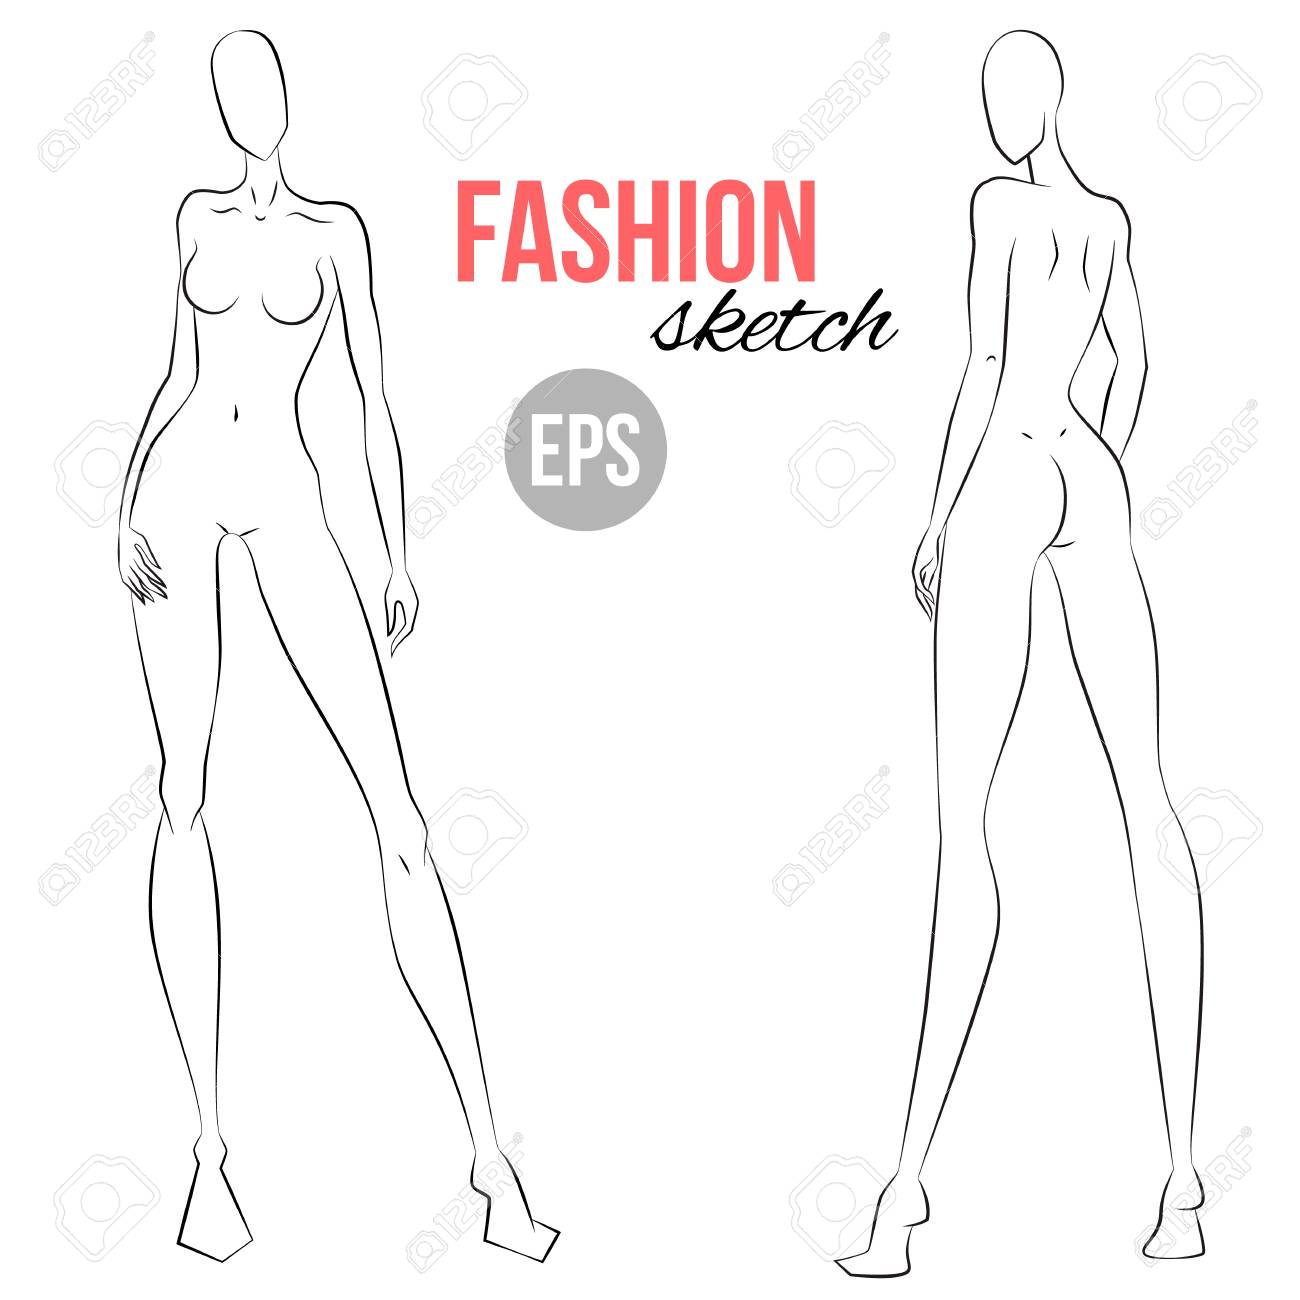 Woman S Figure Sketch Different Poses Template For Drawing Royalty Free Cliparts Vectors And Stock Illustration Image 97069521